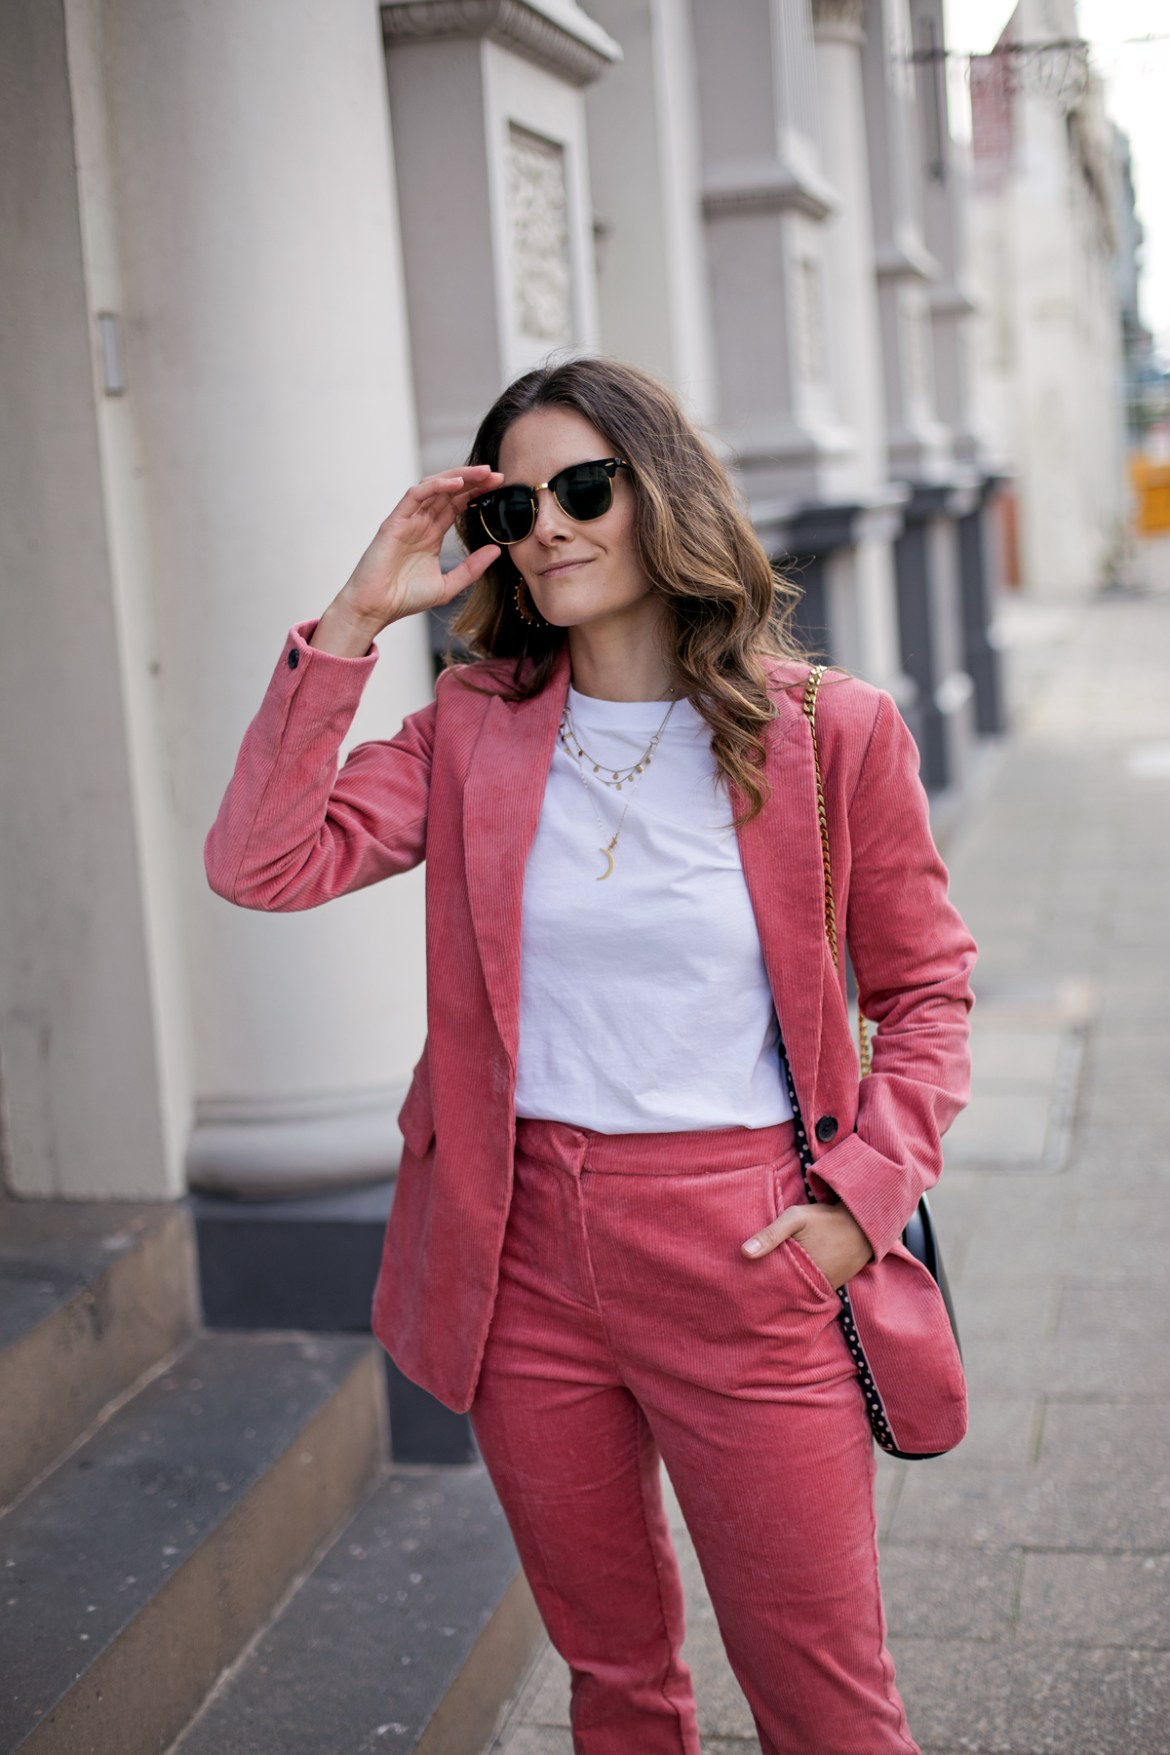 Boden Oxshott corduroy blazer in blush pink worn by fashion blogger from Australia Jenelle Witty of Inspiring Wit